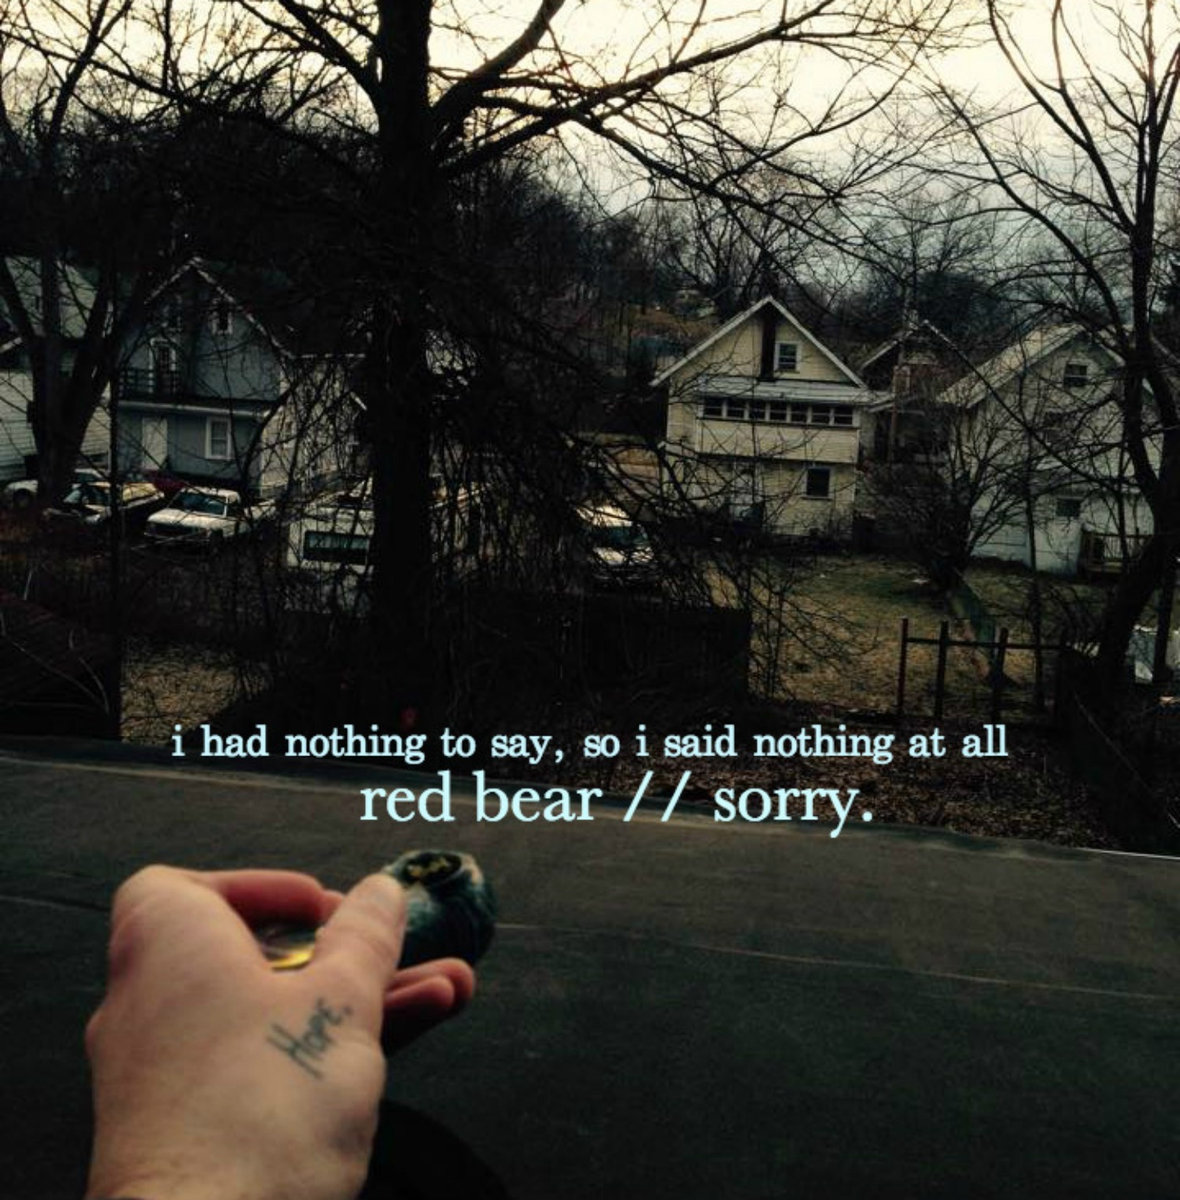 red bear / sorry. - I Had Nothing to Say, So I Said Nothing at All